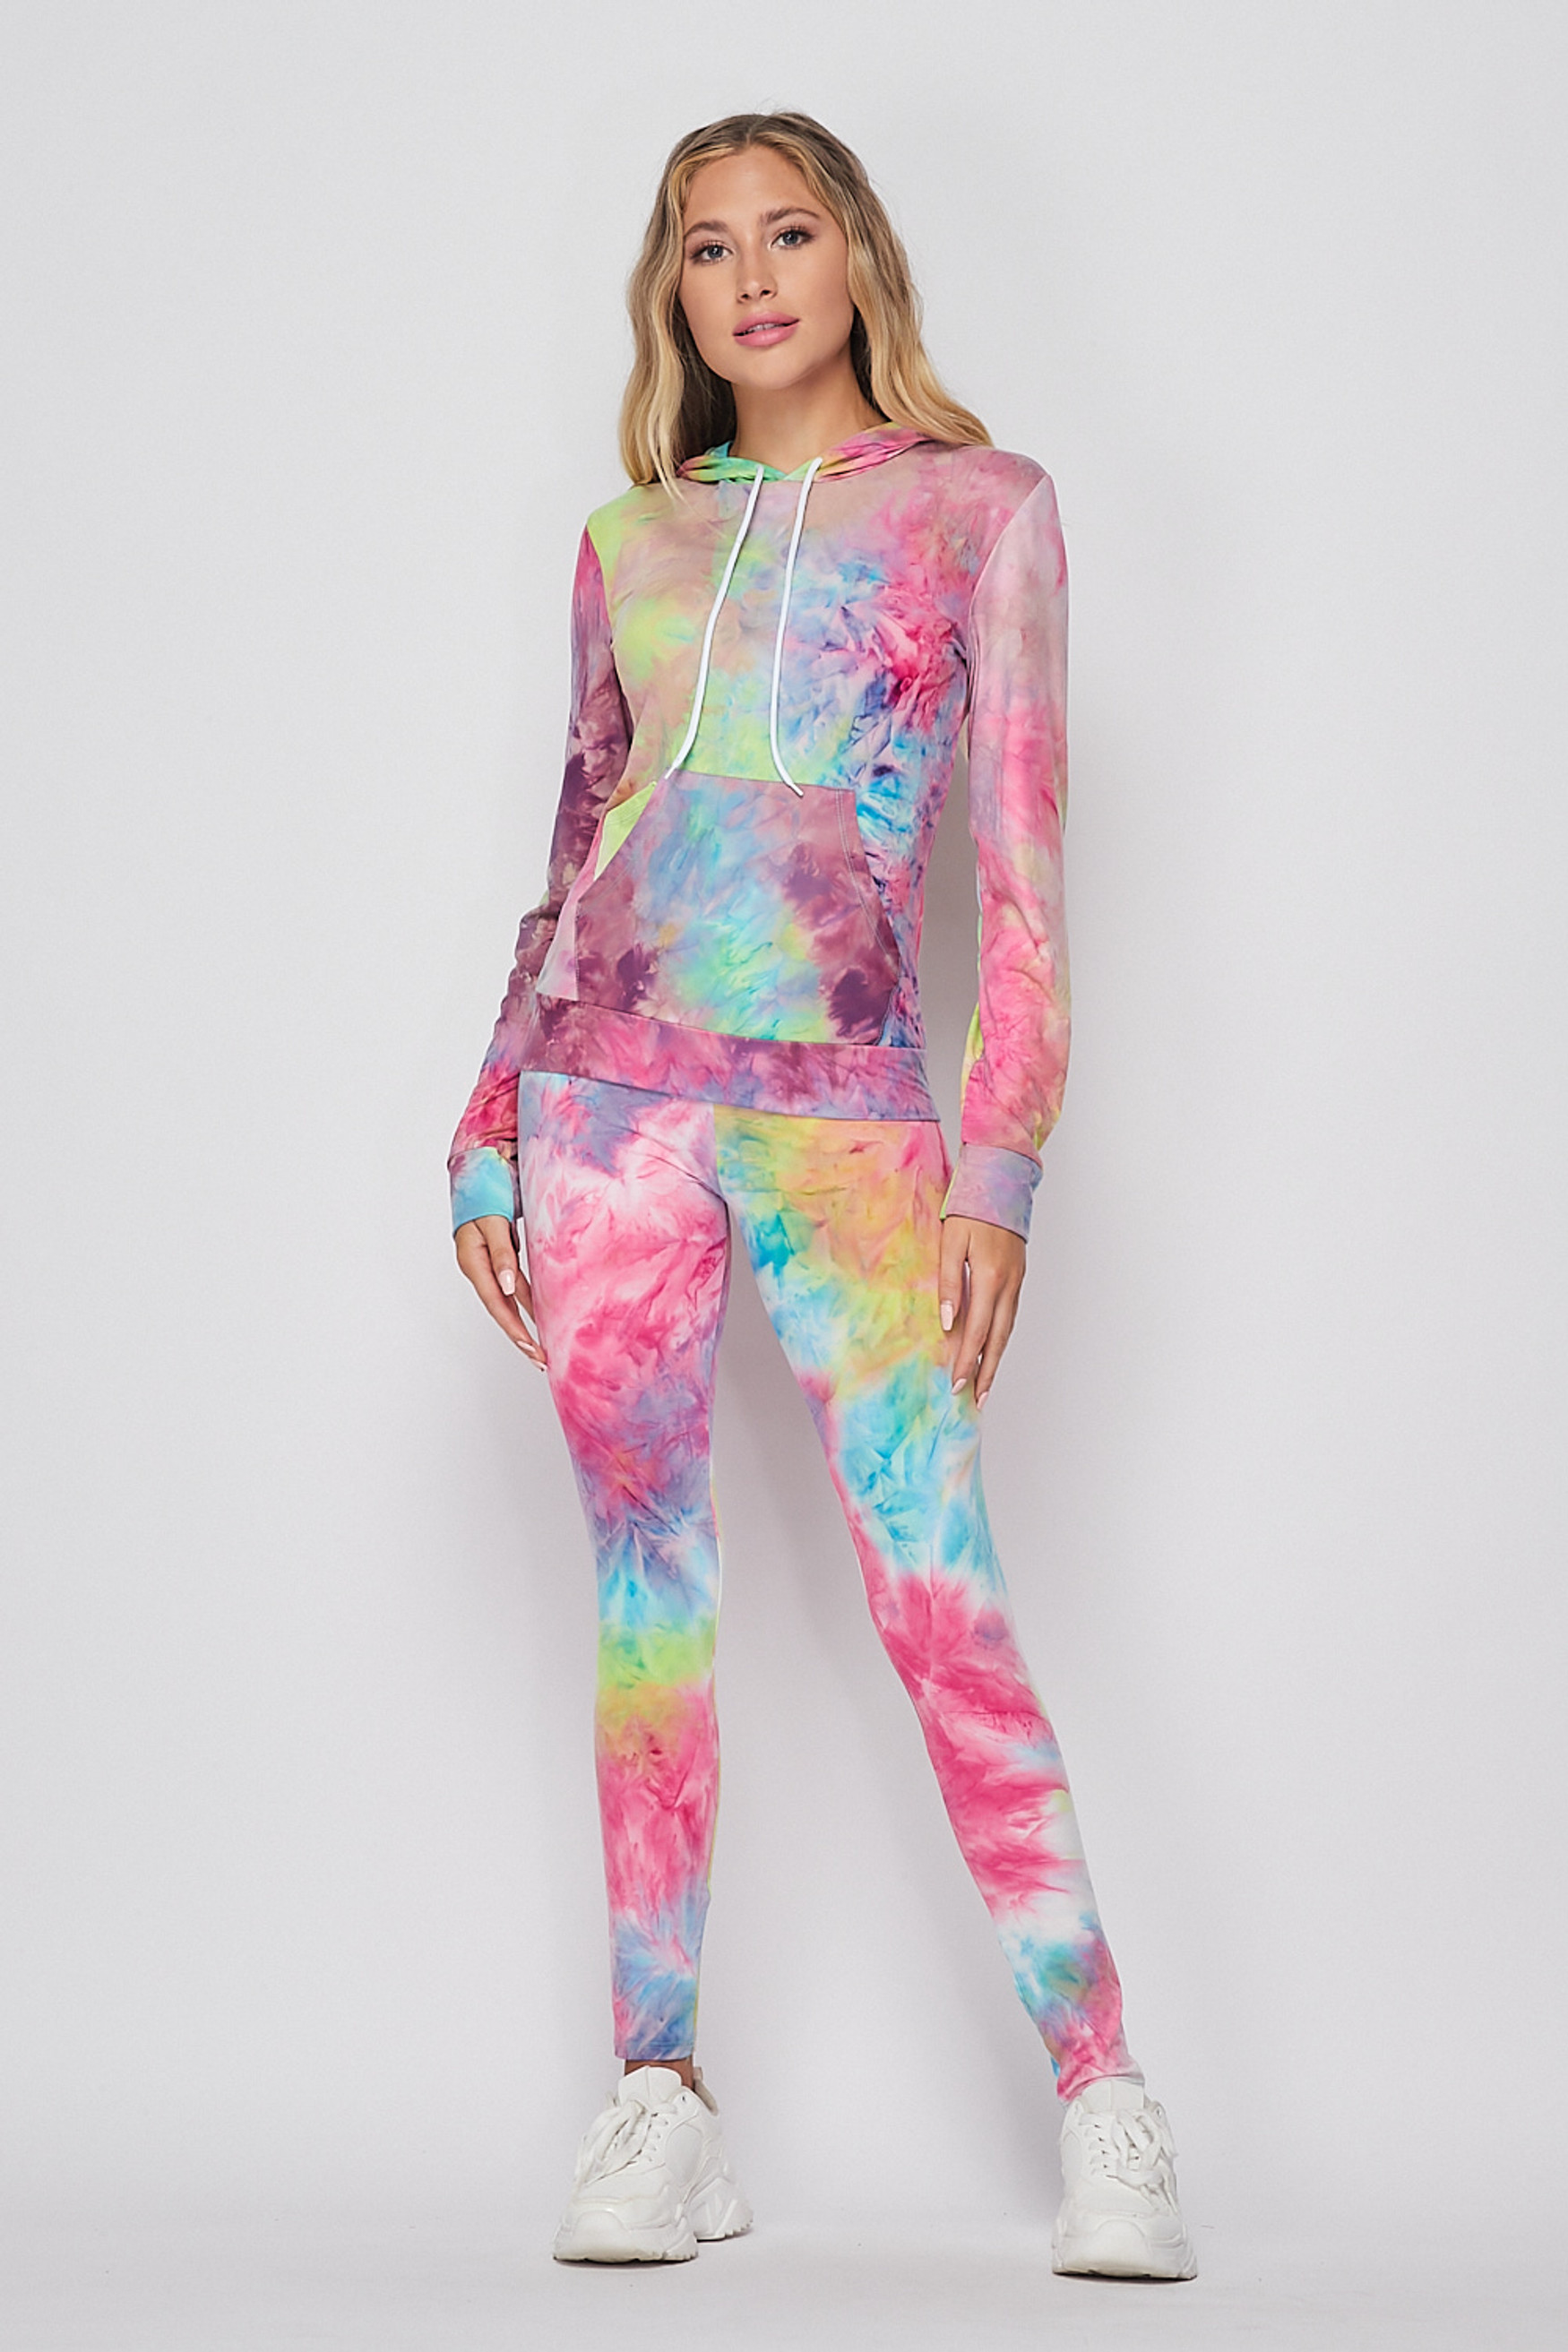 Front side image of Blue/Pink Tie Dye 2 Piece Leggings and Hooded Jacket Set